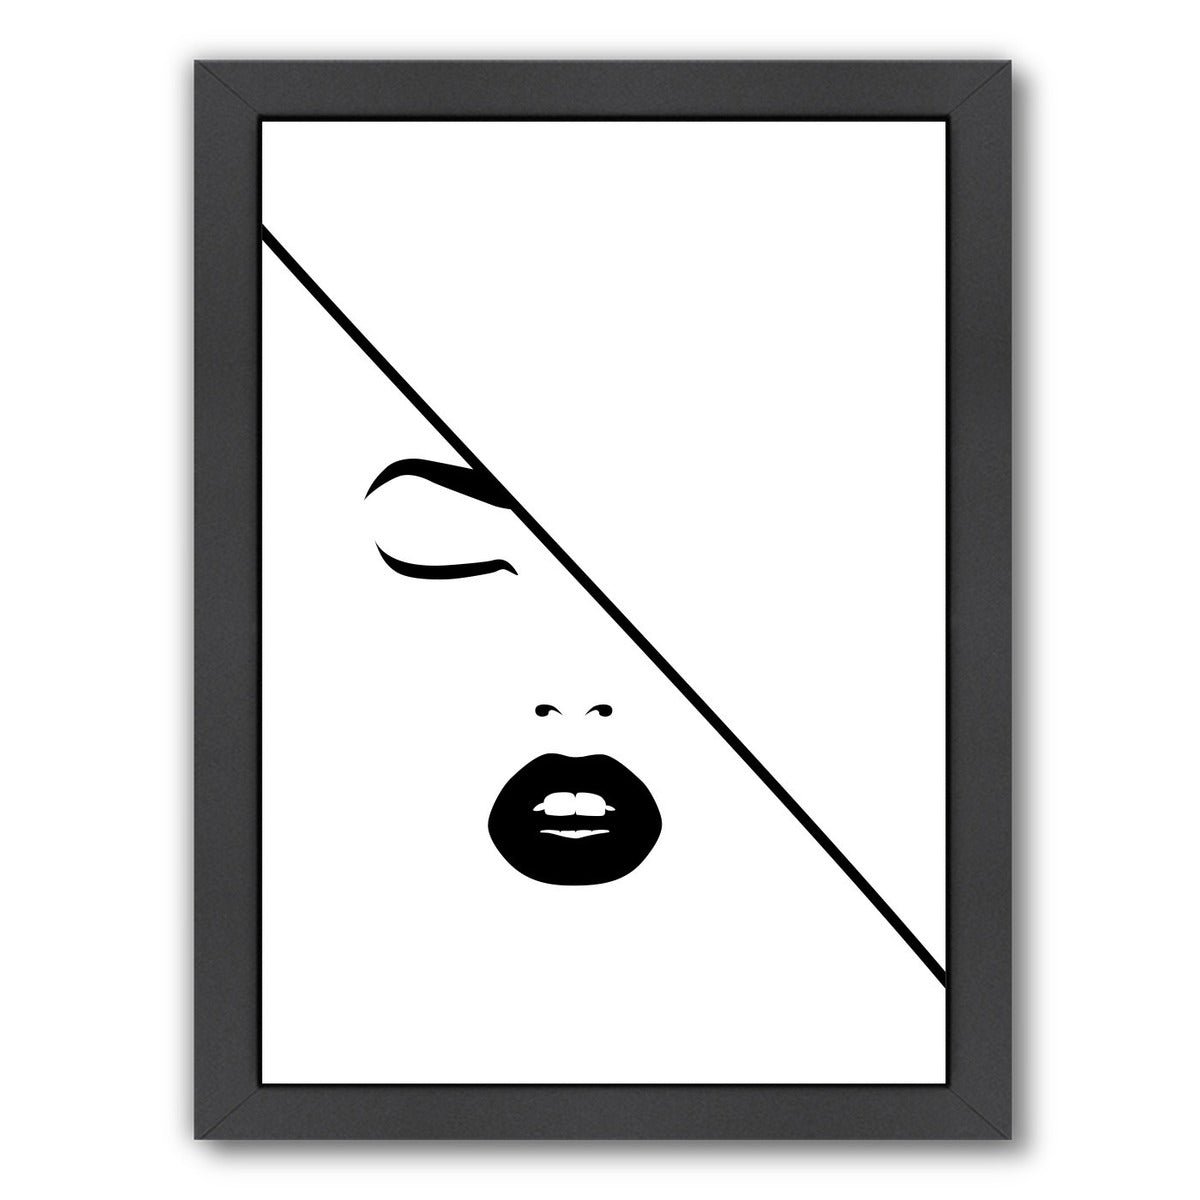 Under The Line by Explicit Design Framed Print - Wall Art - Americanflat